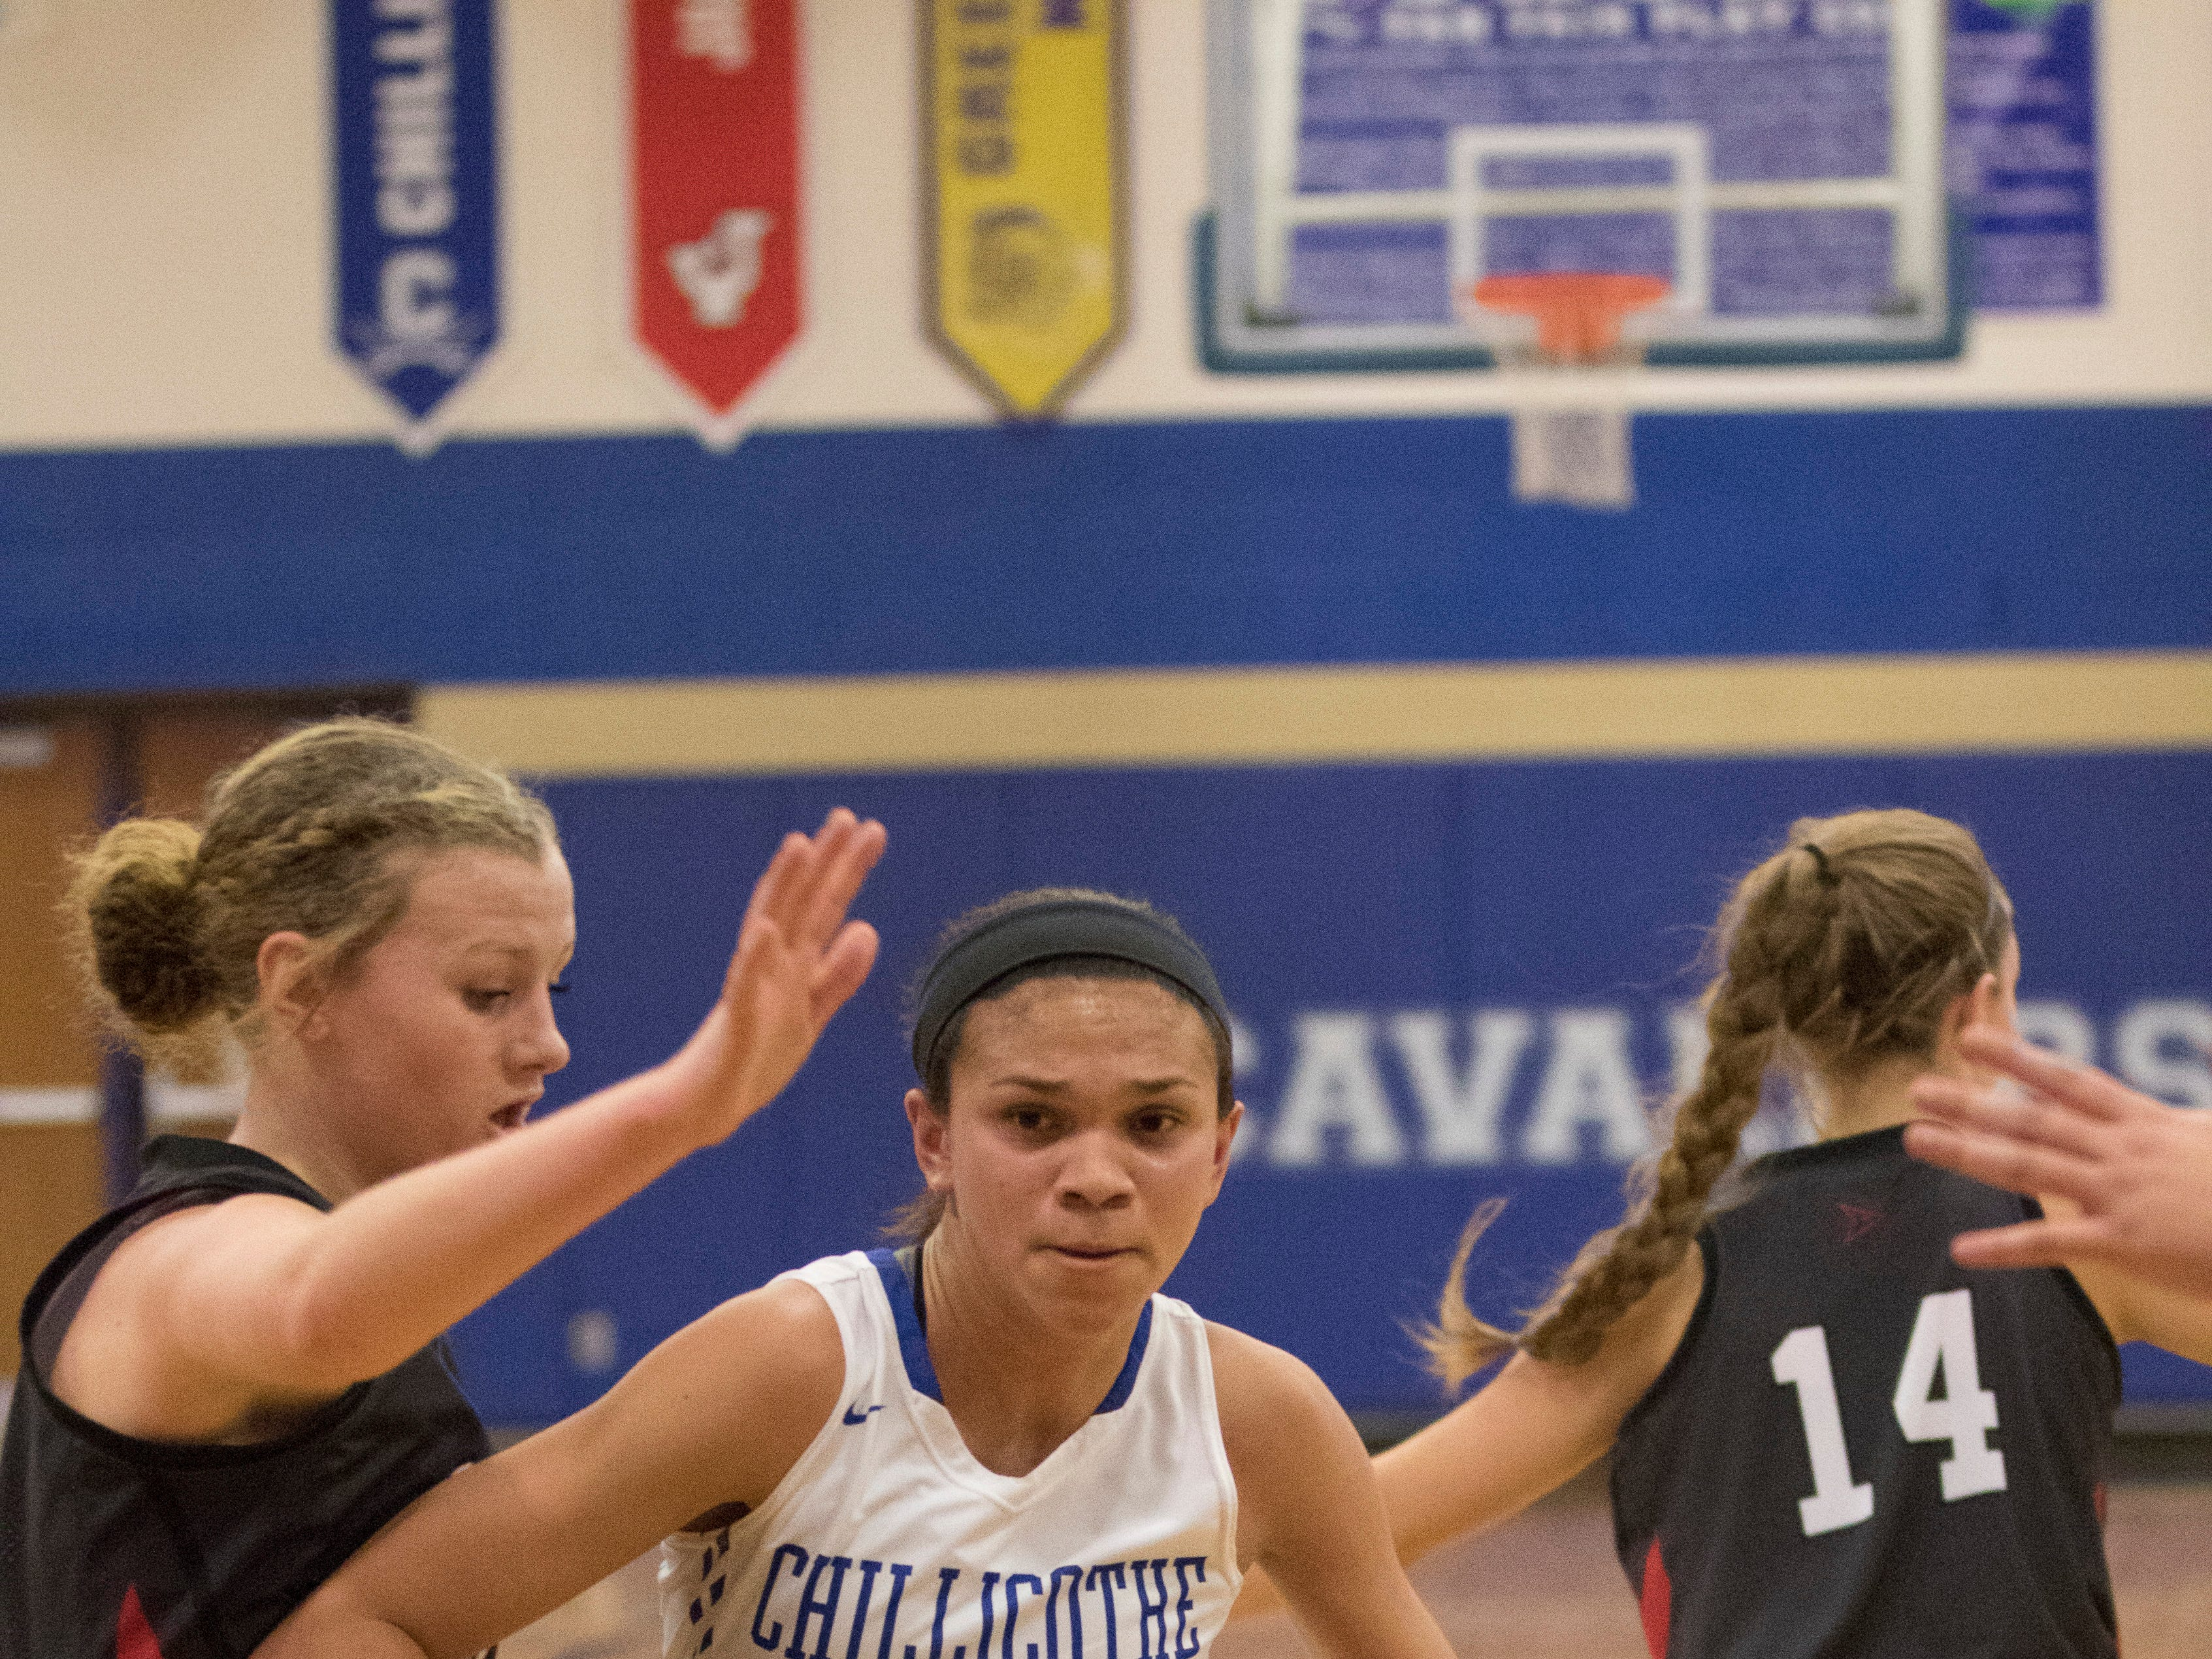 Logan Elm defeated Chillicothe 41-26 Tuesday night at Chillicothe High School.